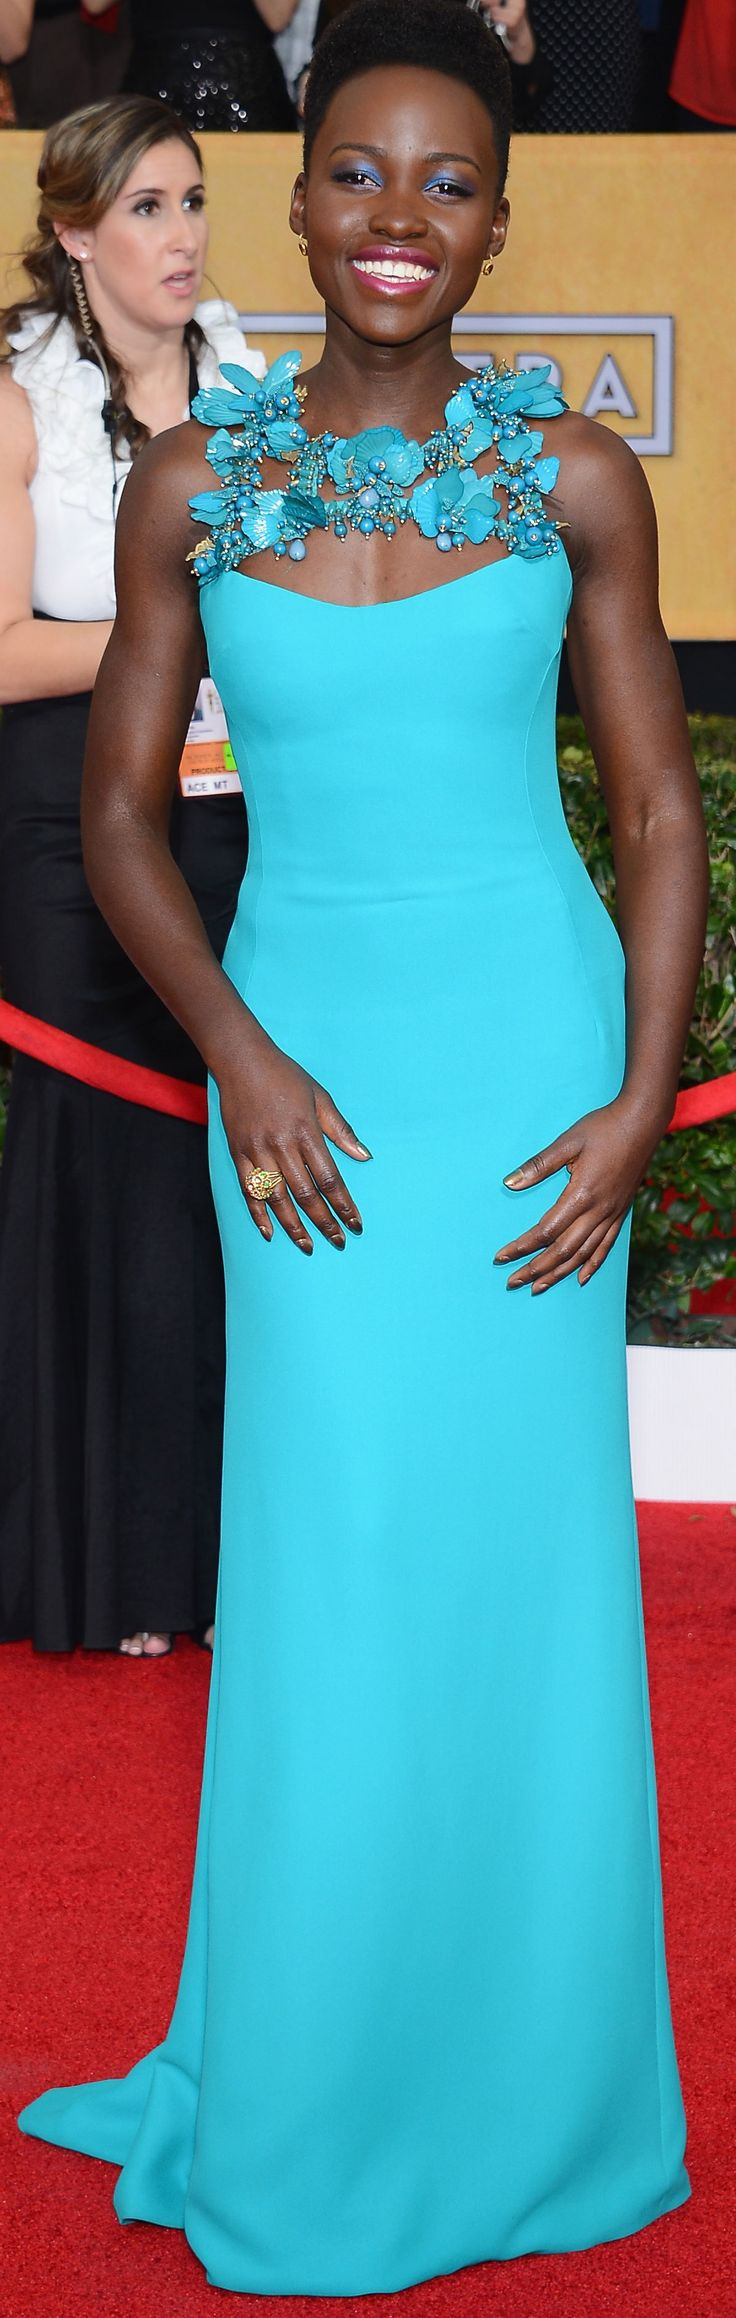 A bright teal Gucci gown looked stunning on Lupita Nyong'o at the SAG Awards